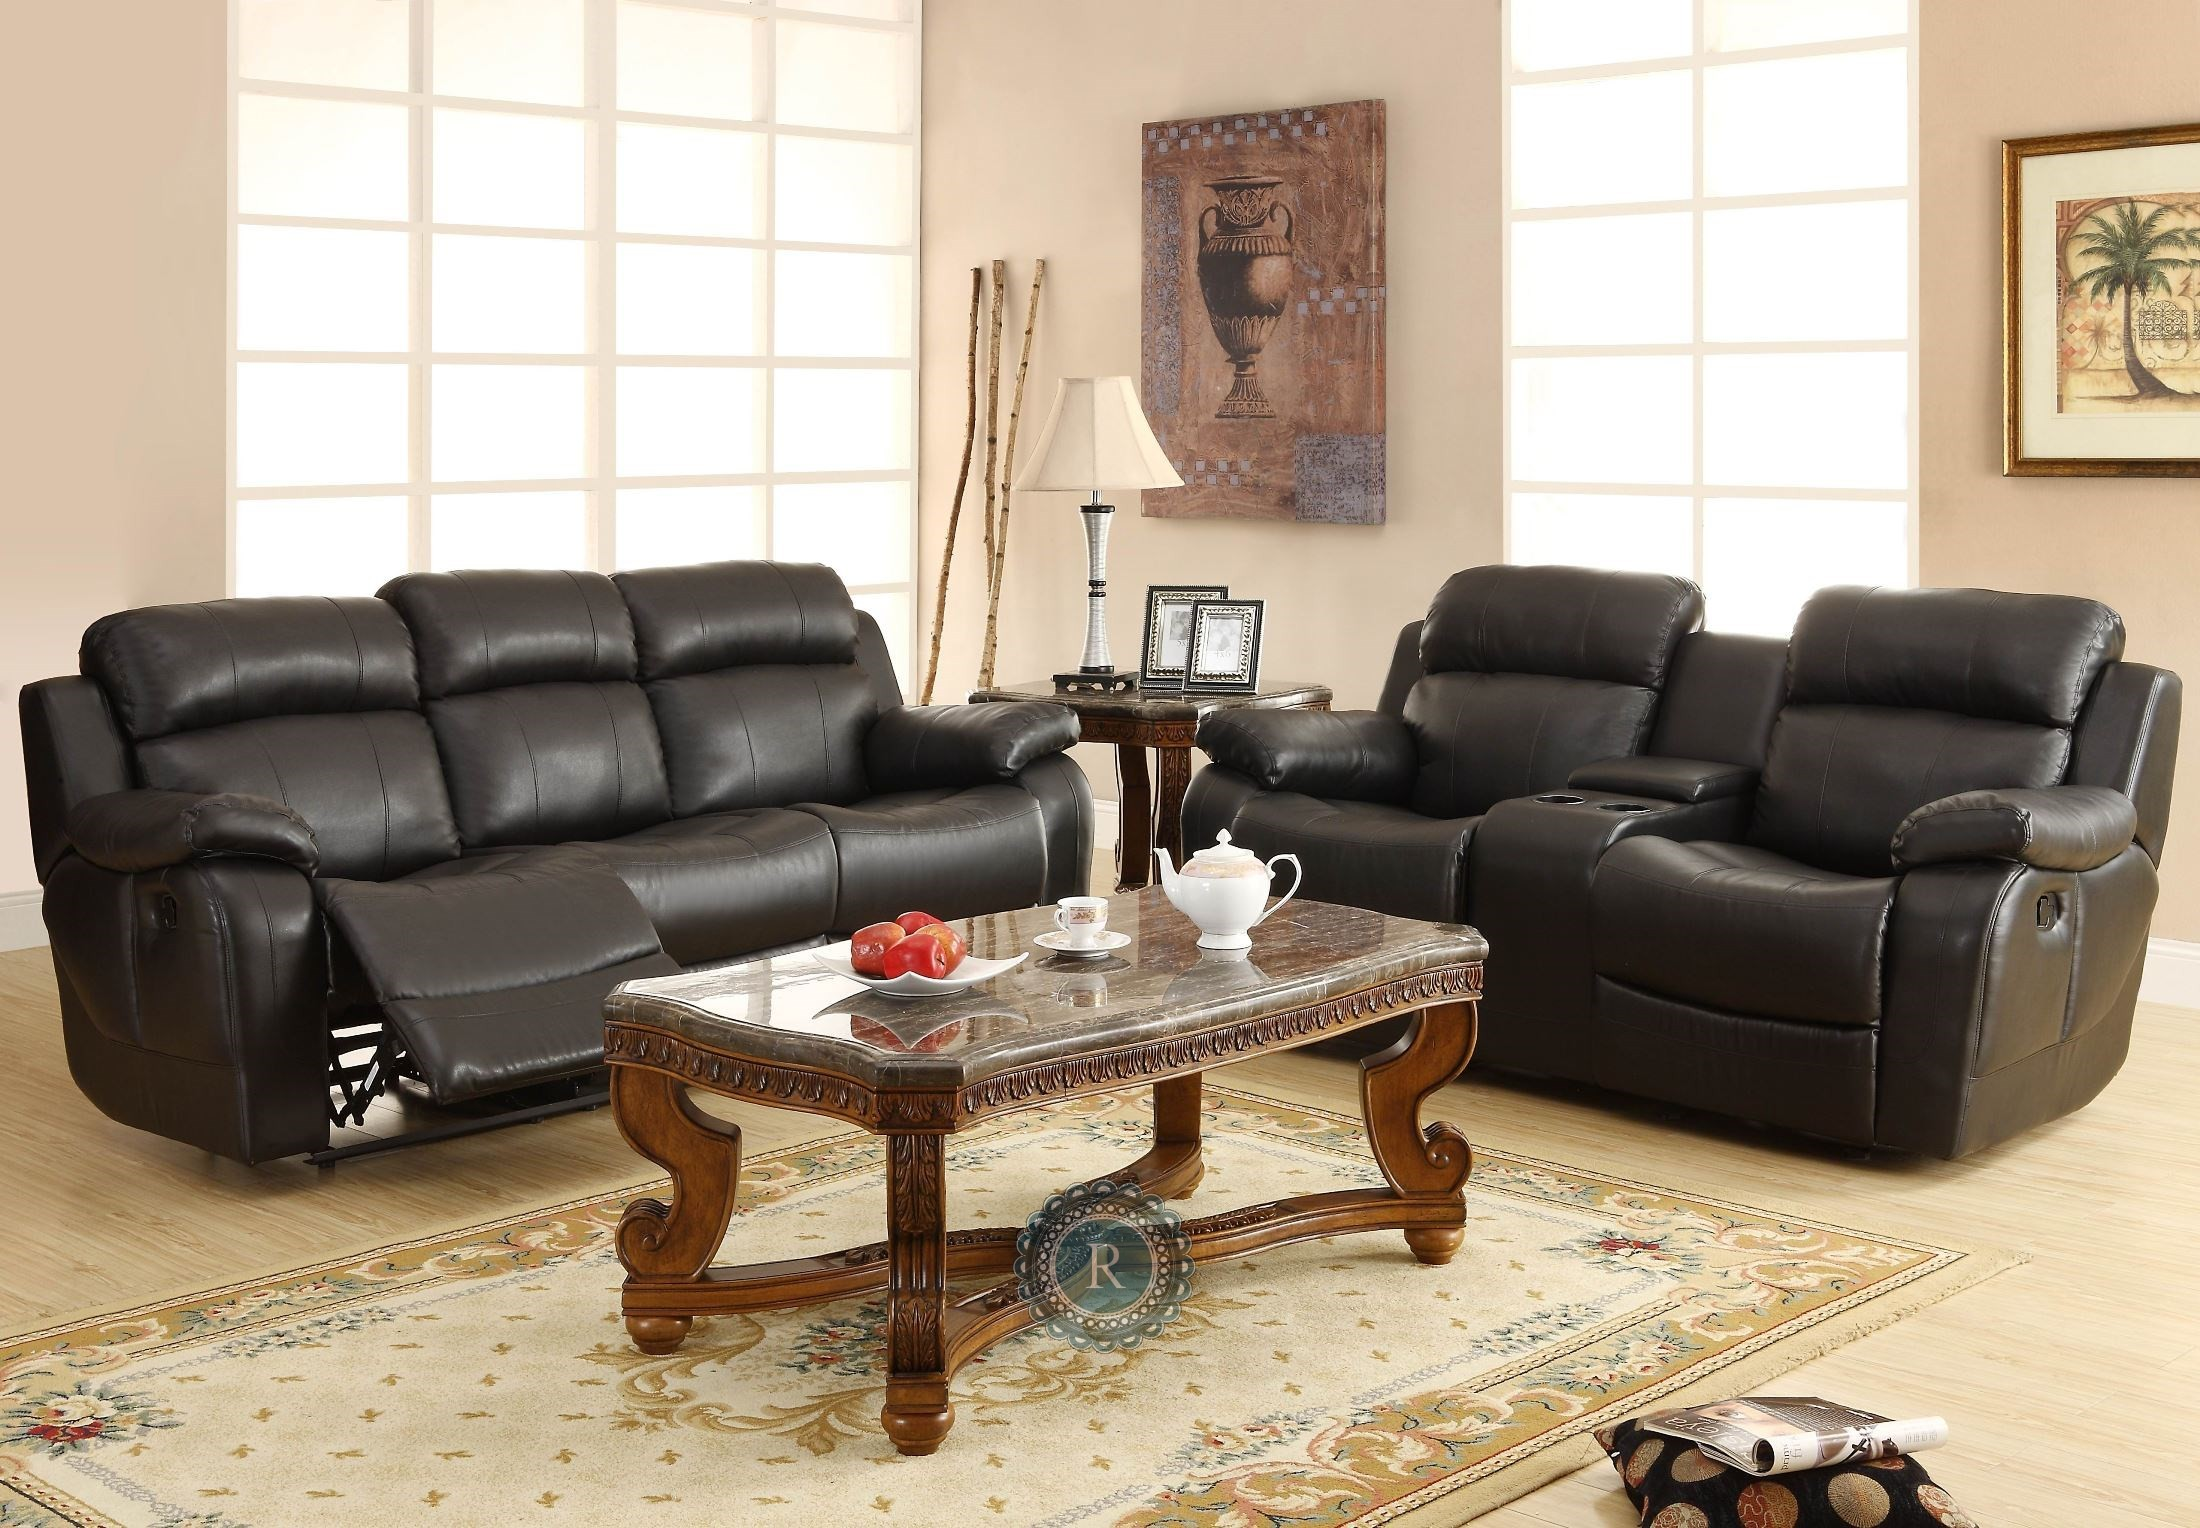 double recliner chairs with cup holders folding travel beach marille black reclining sofa center drop down